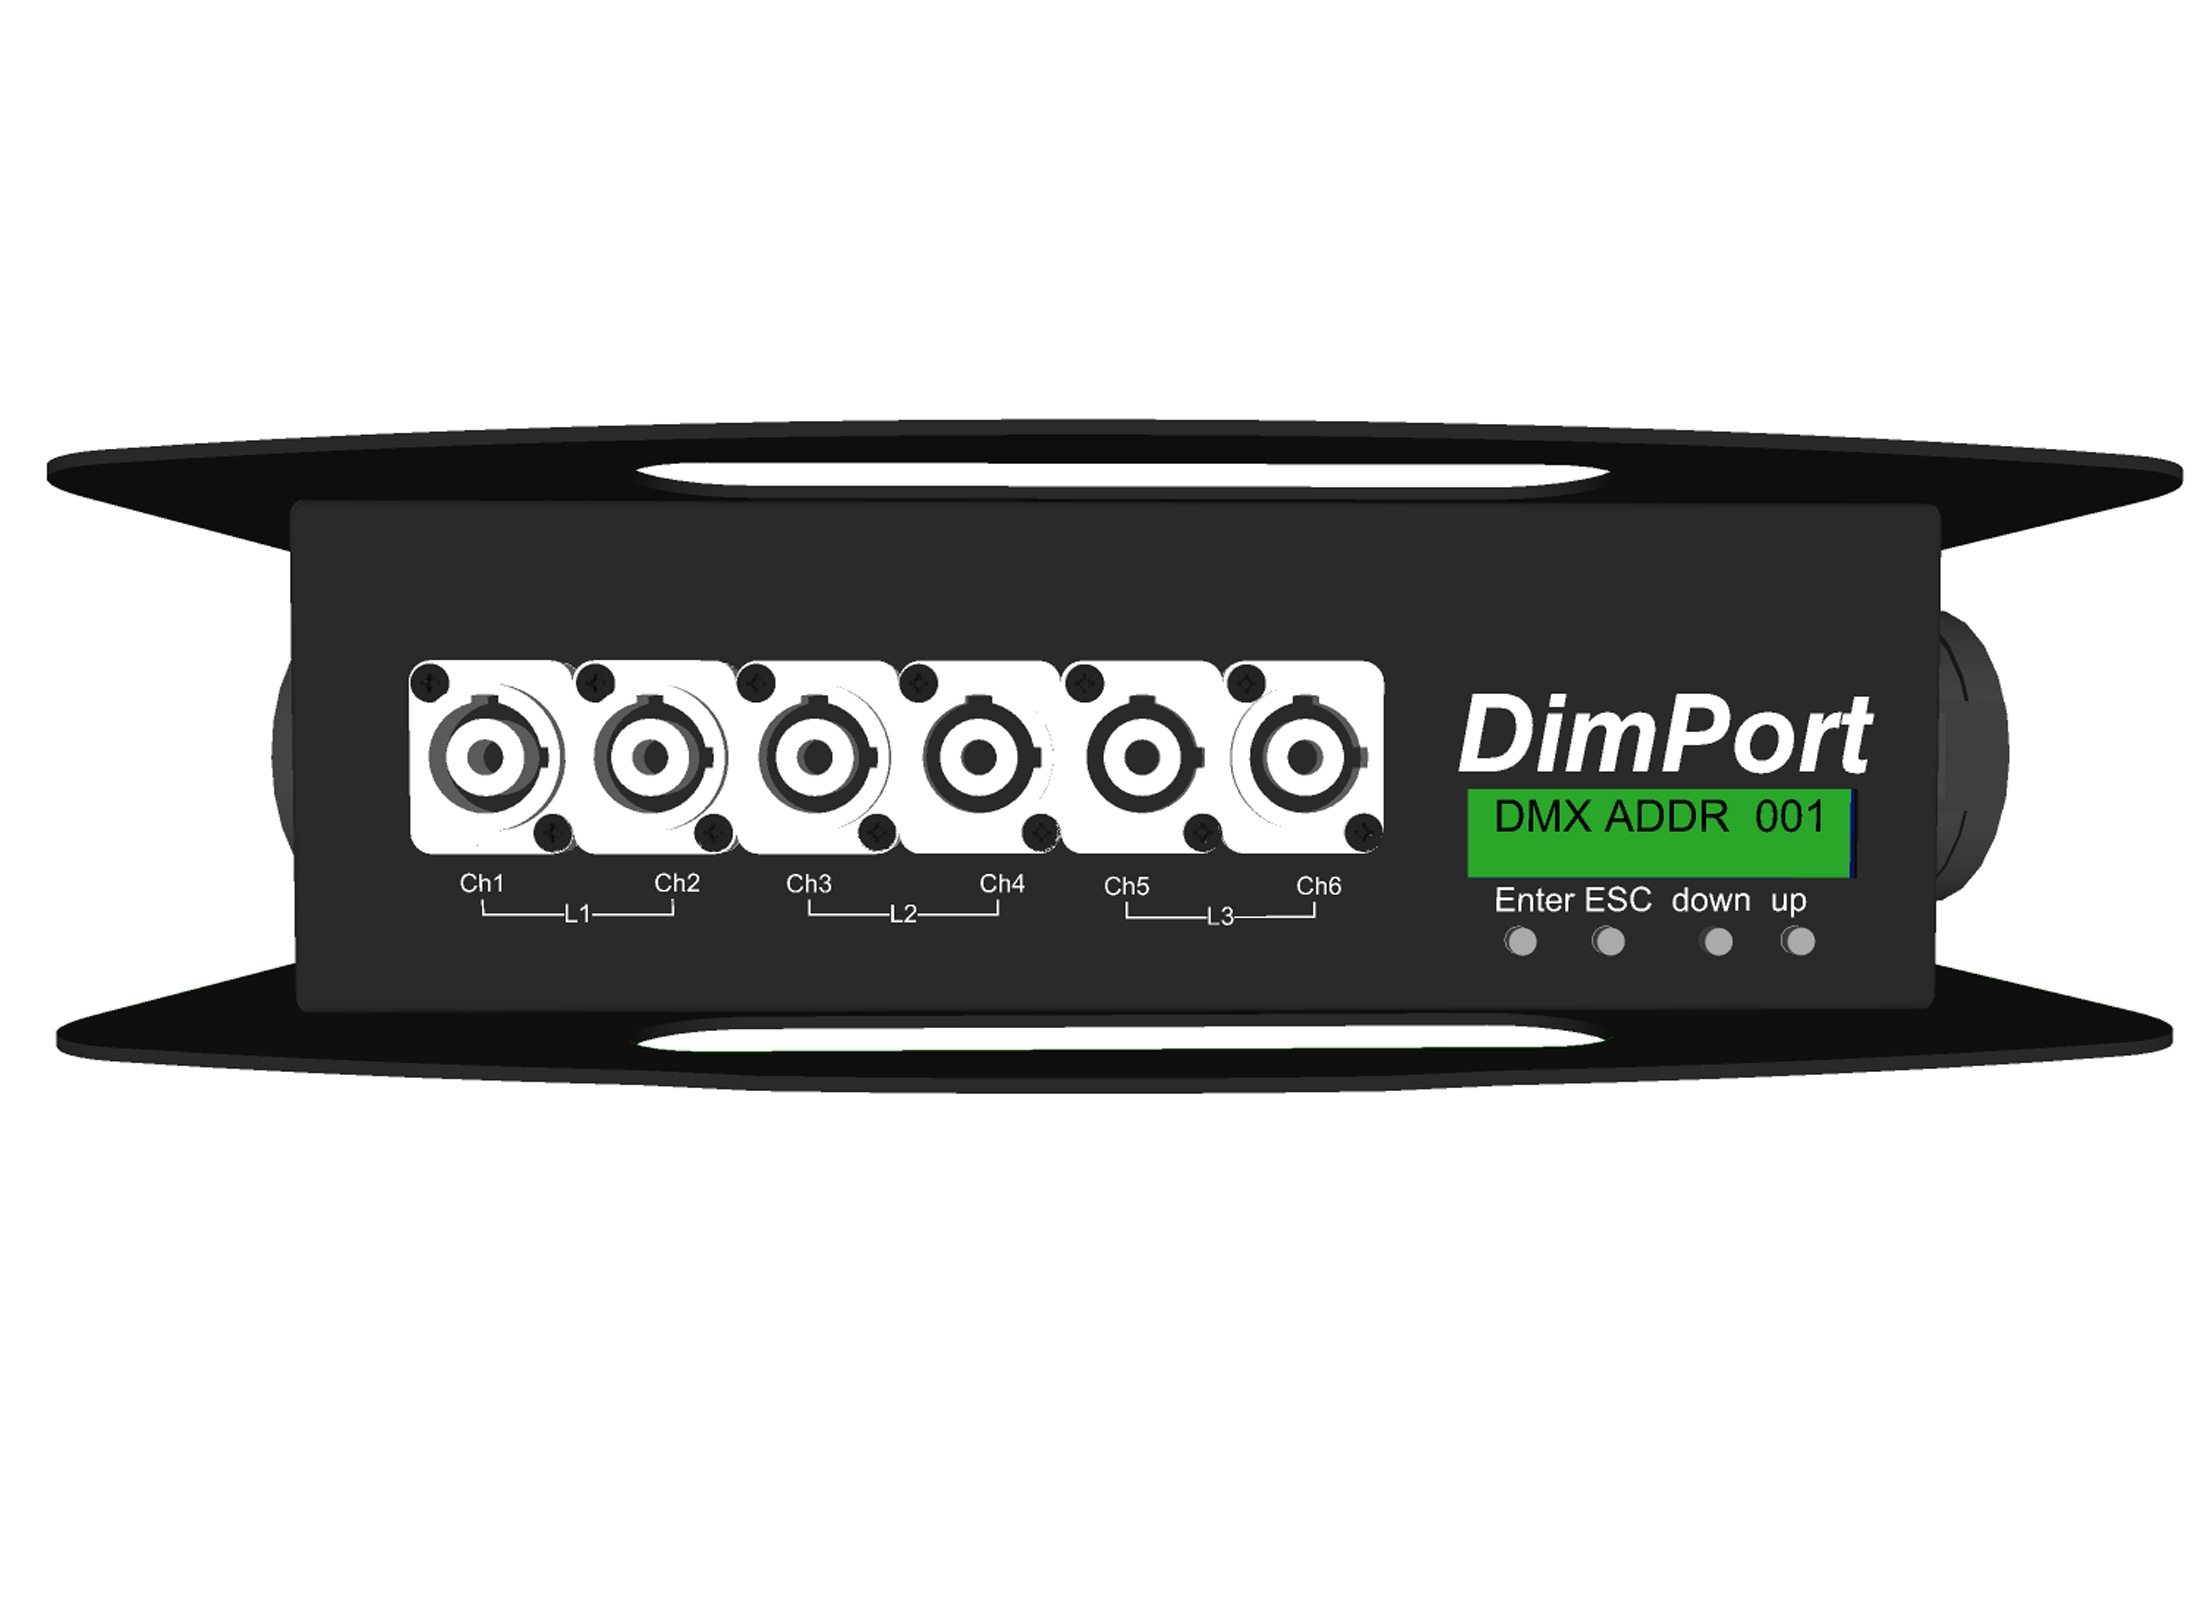 Rigport Dimport 32MK2 Dimmer Online At Low Prices At Huss Light & Sound